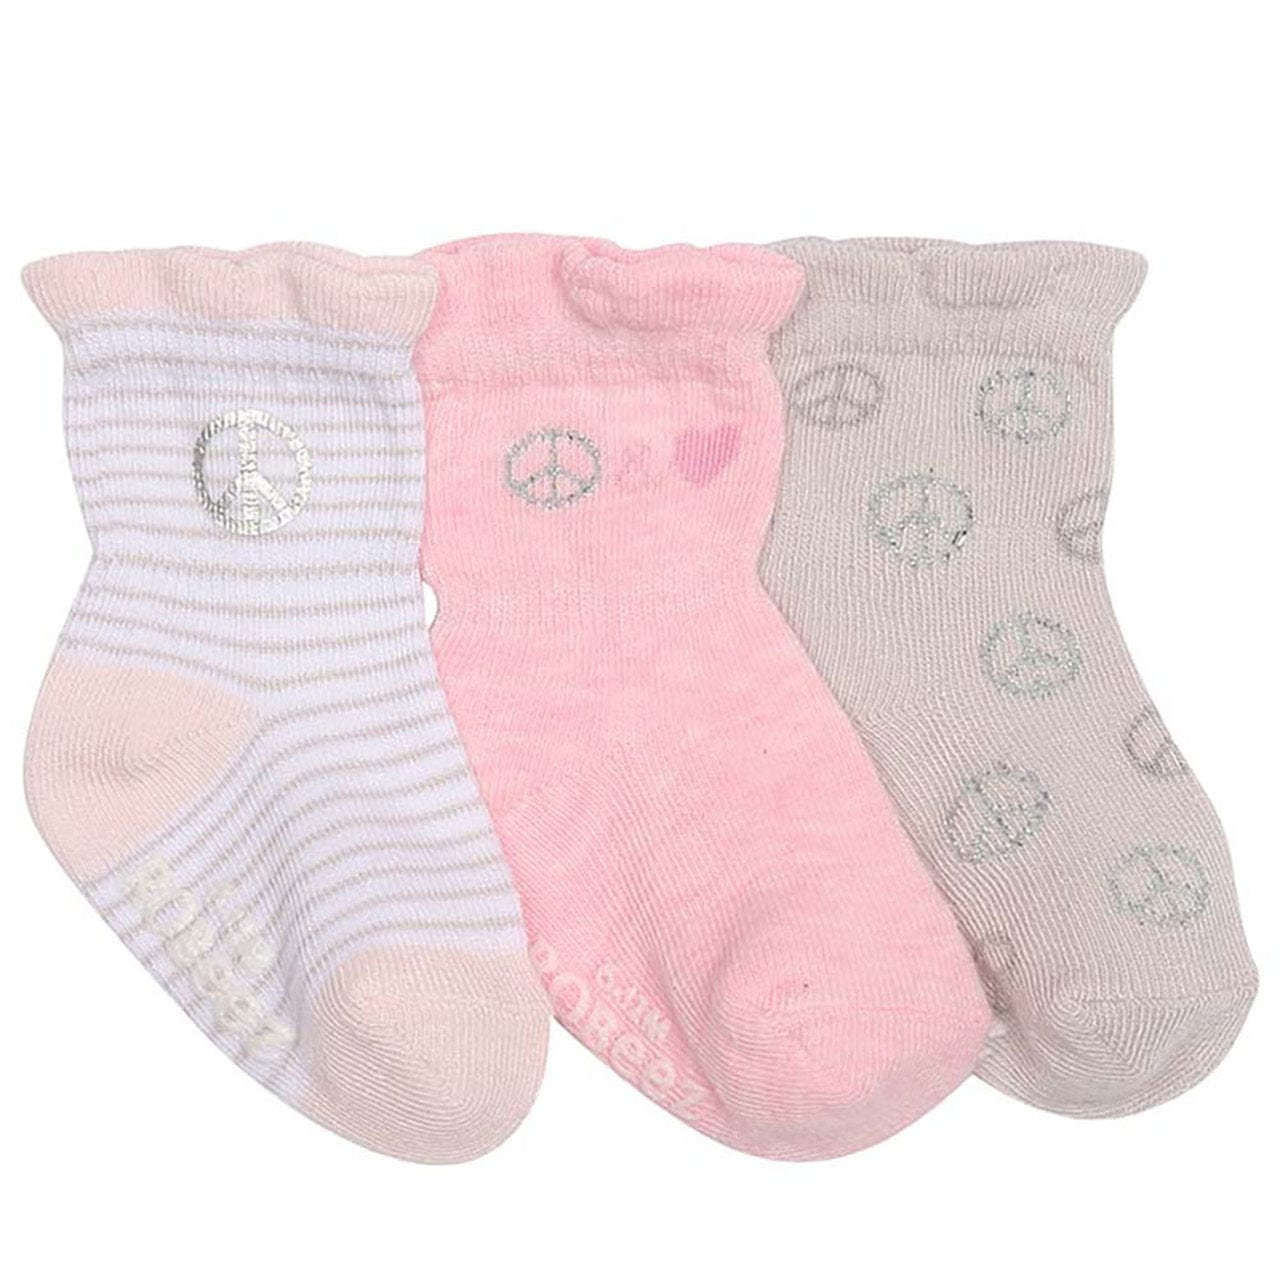 Robeez Non-Skid Socks 3 PK - Peace and Love